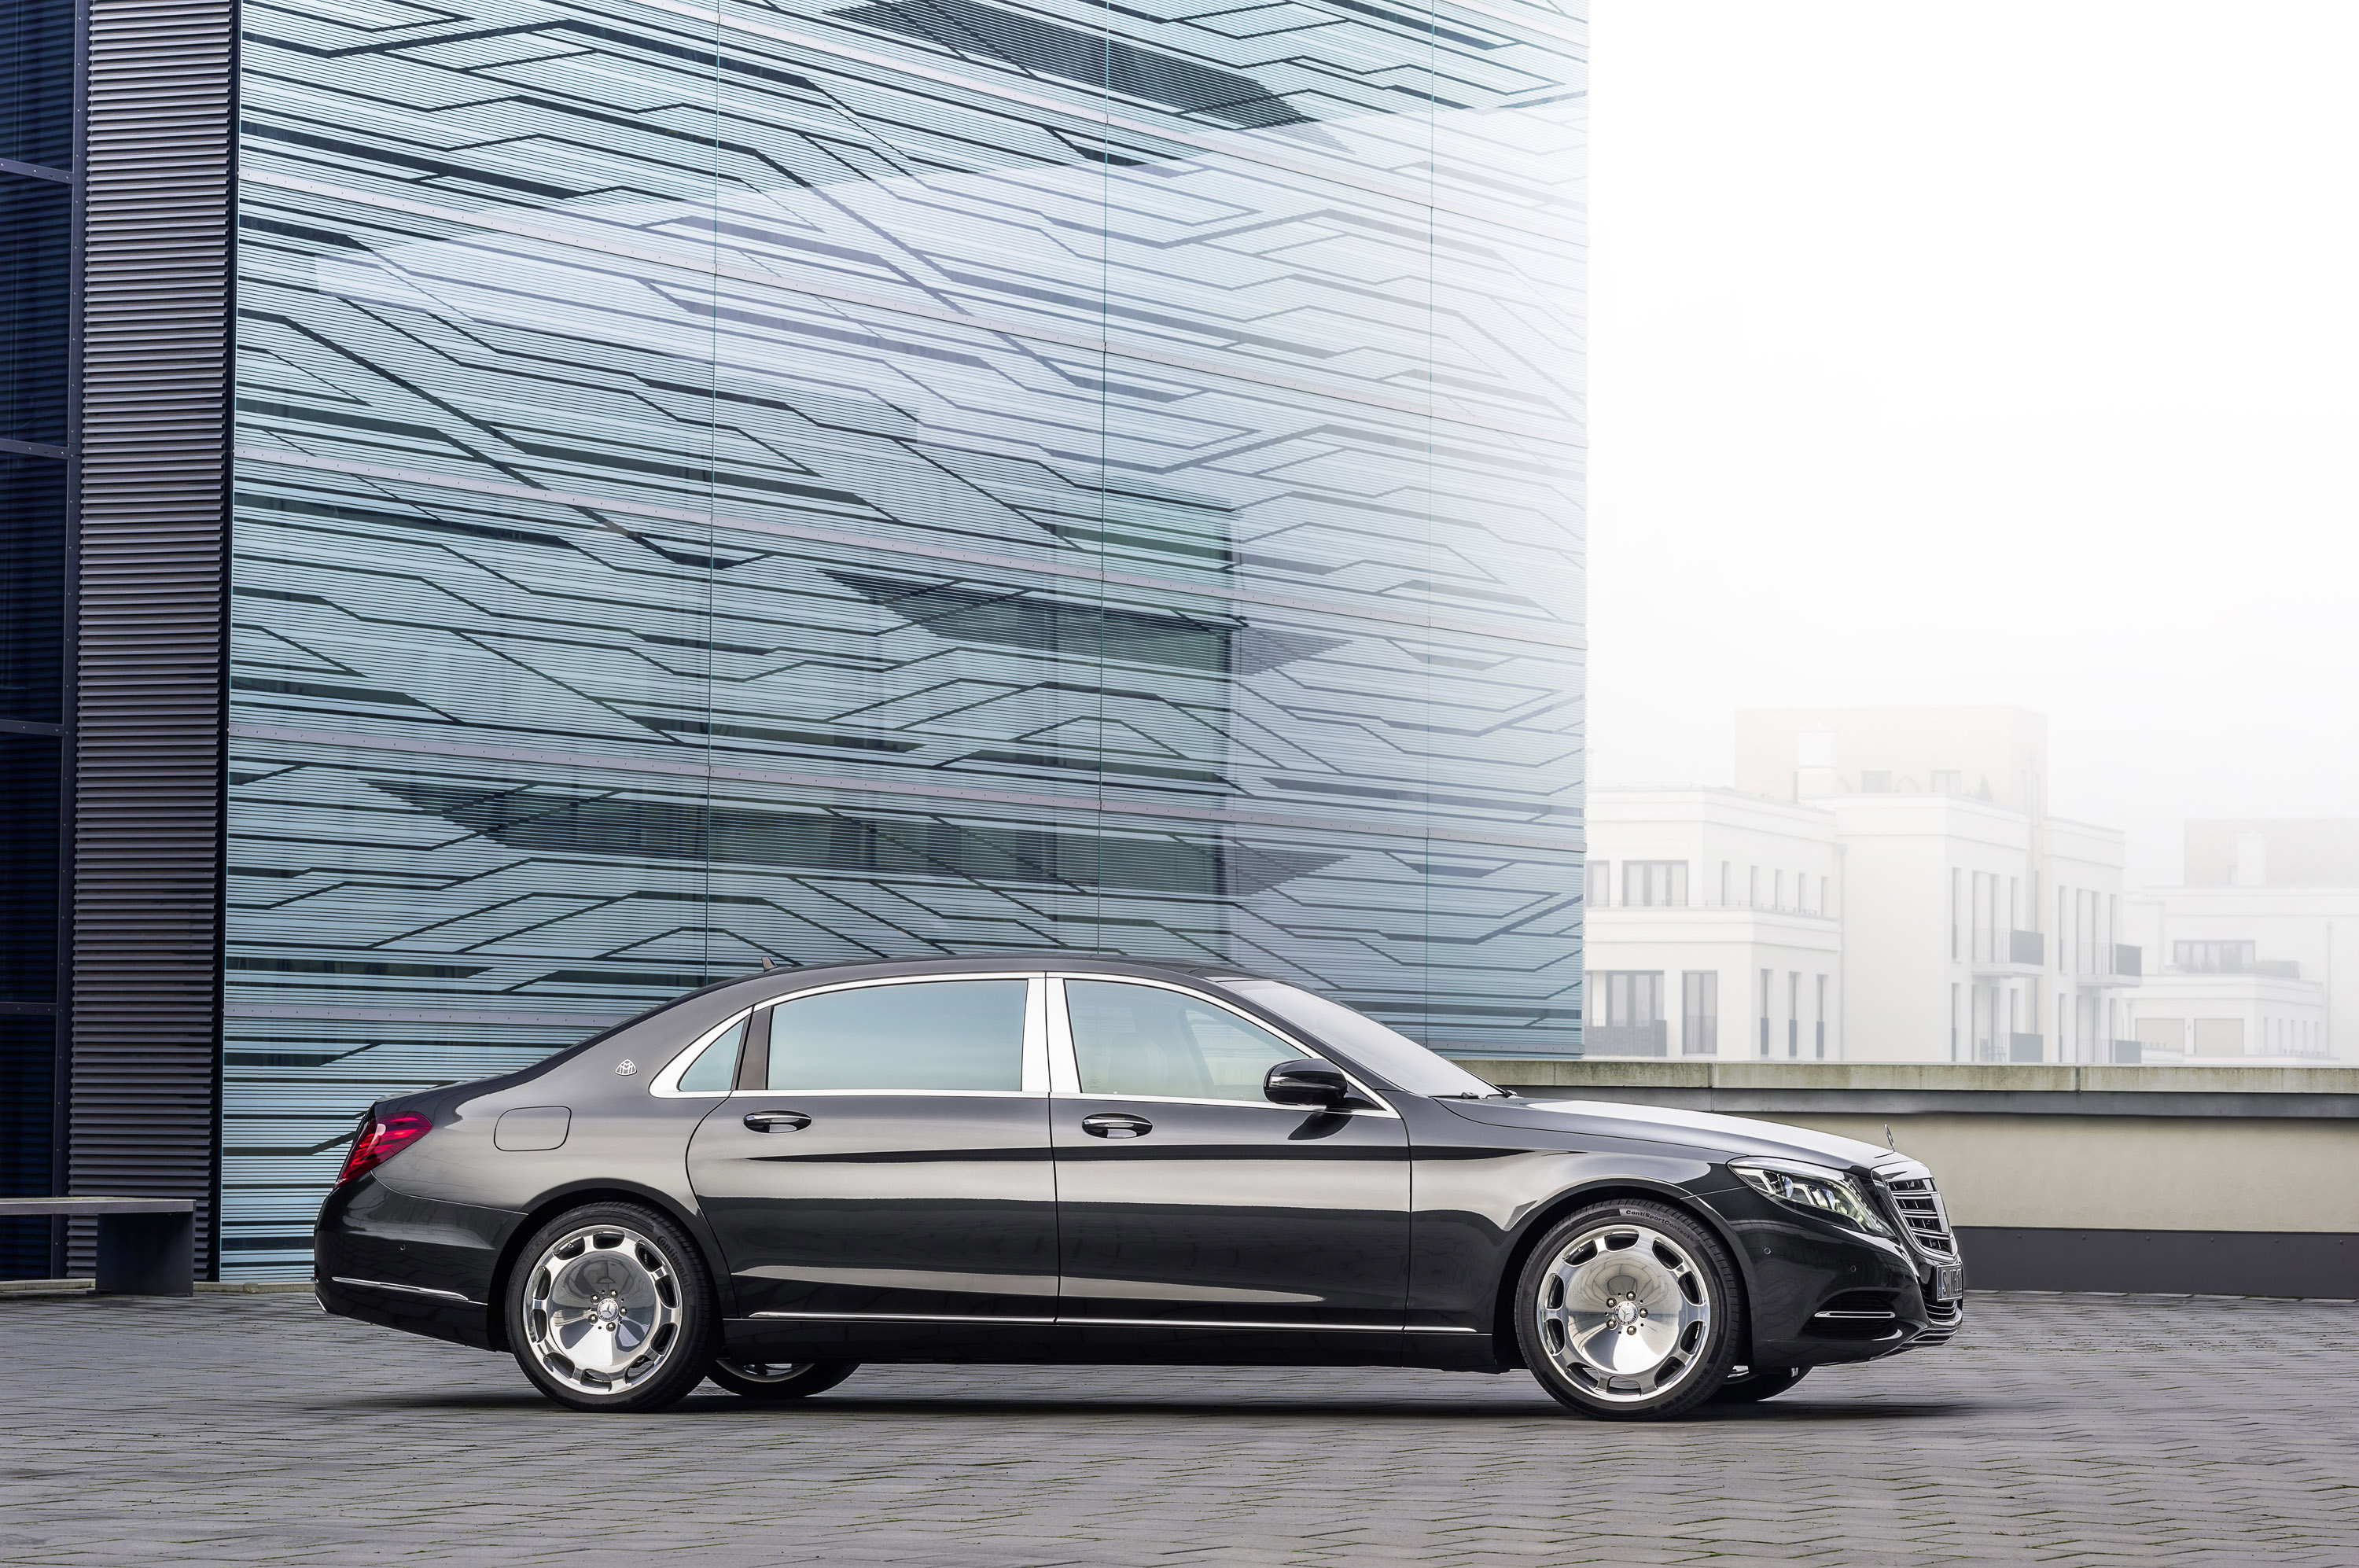 2016 Mercedes-Benz S-Class Maybach - Picture 113421